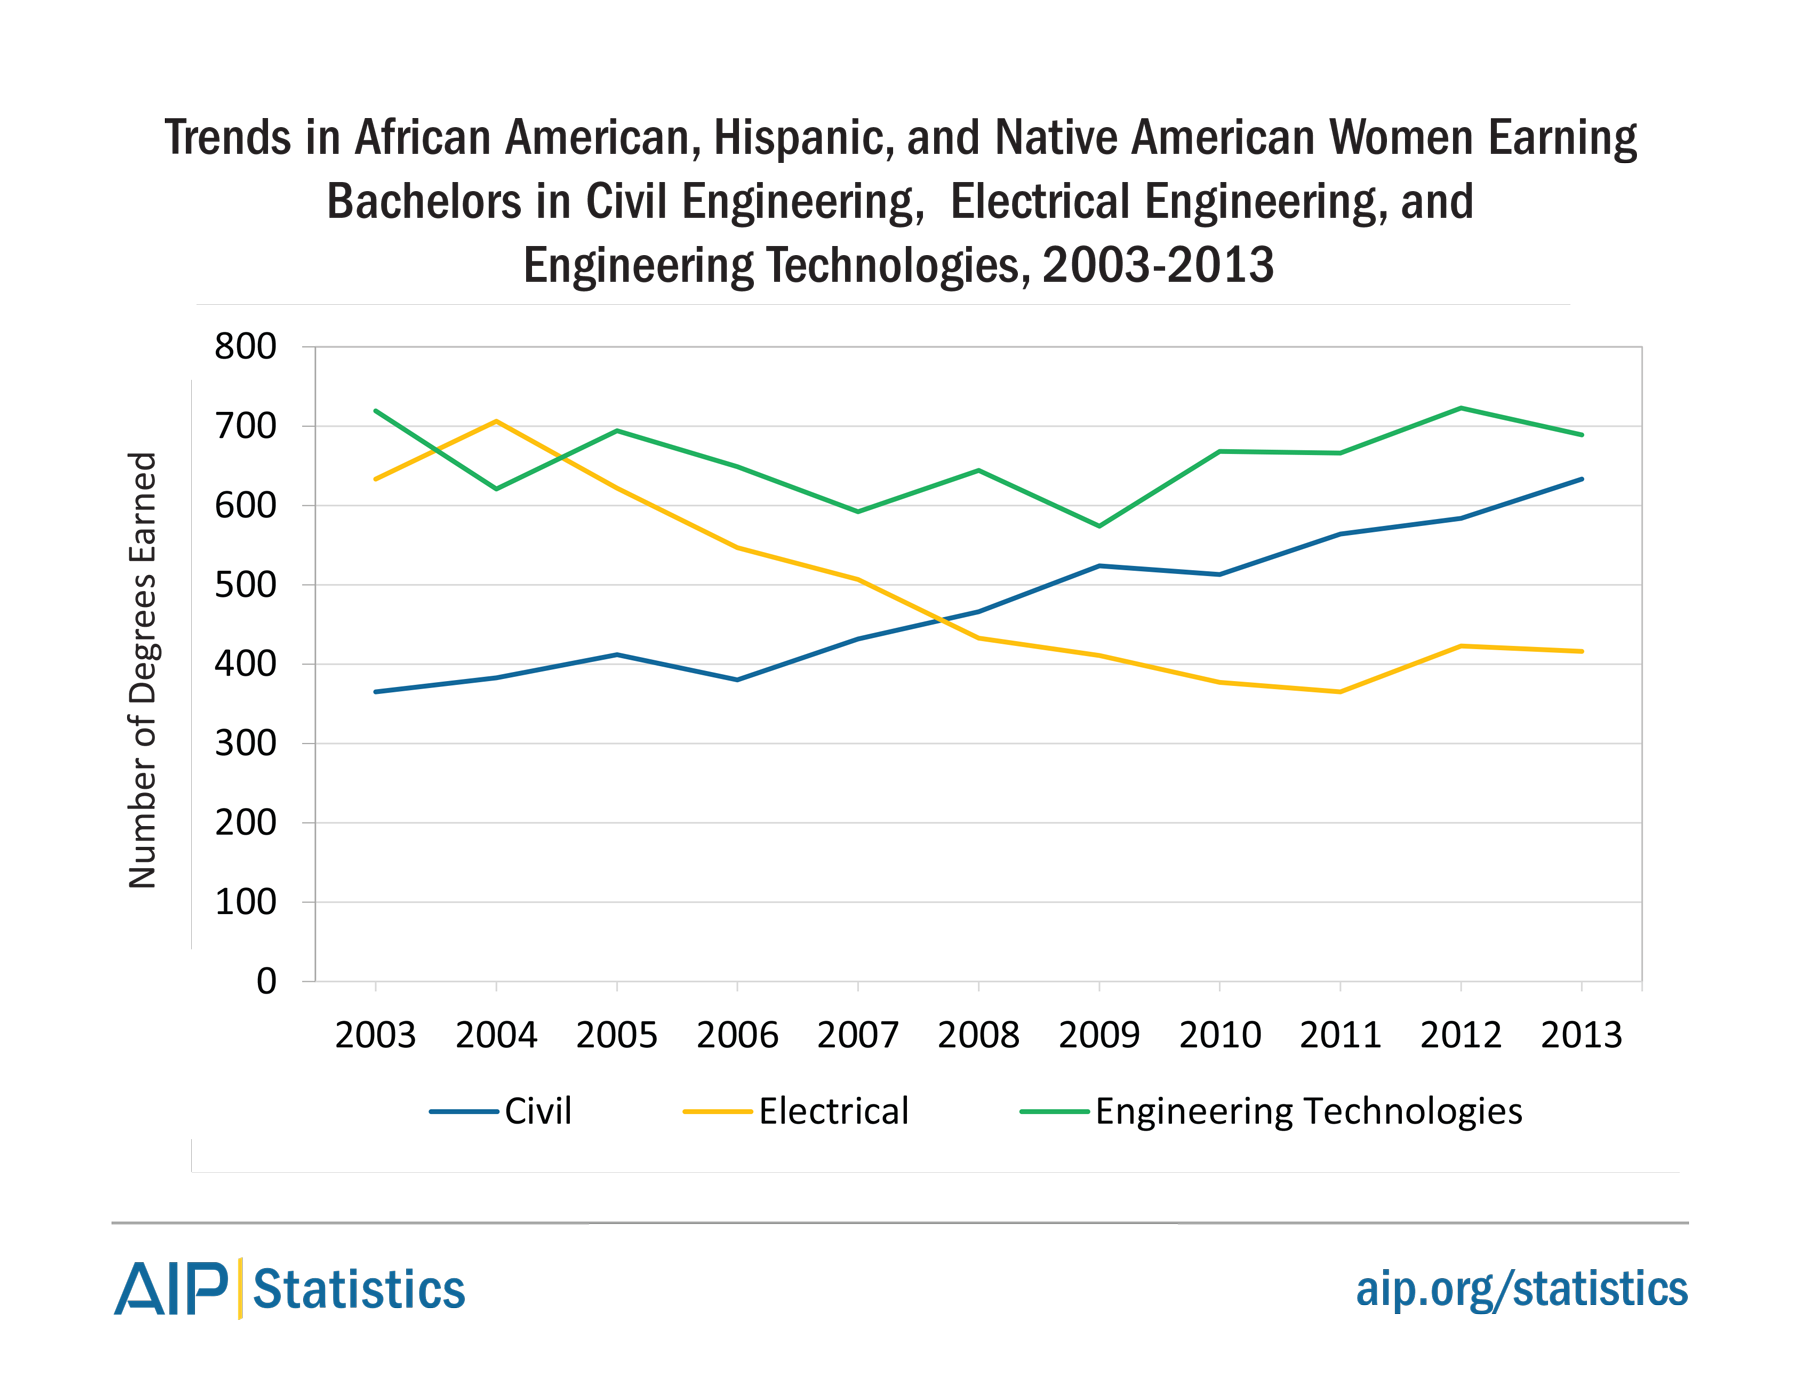 Trends in African American, Hispanic, and Native American Women Earning Bachelors in Civil Engineering, Electrical Engineering, and Engineering Technologies, 2003-2013